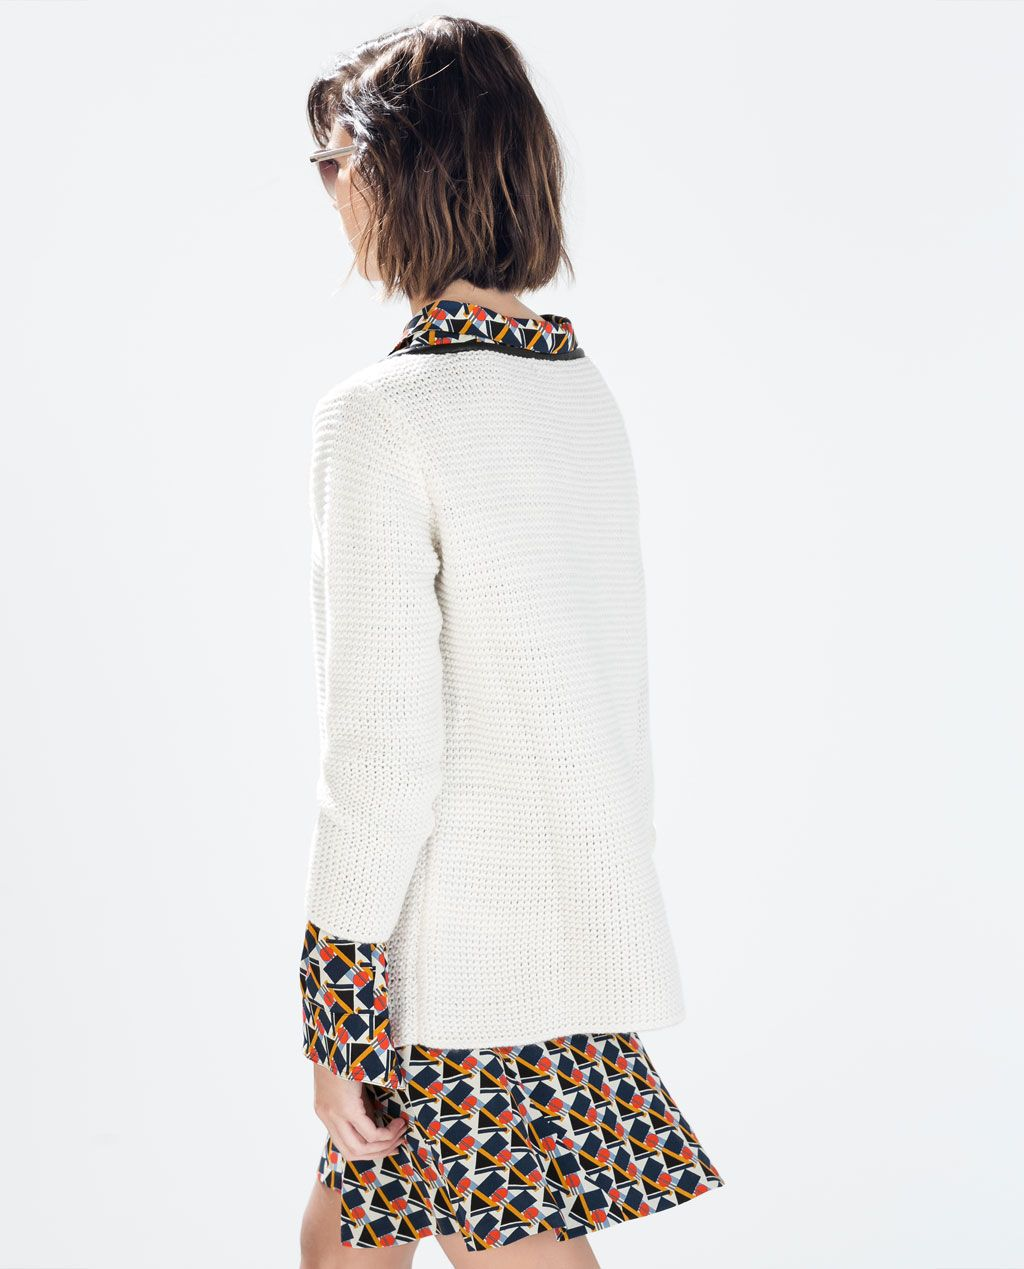 ZARA - WOMAN - SWEATER WITH FAUX LEATHER DETAIL 10-2014